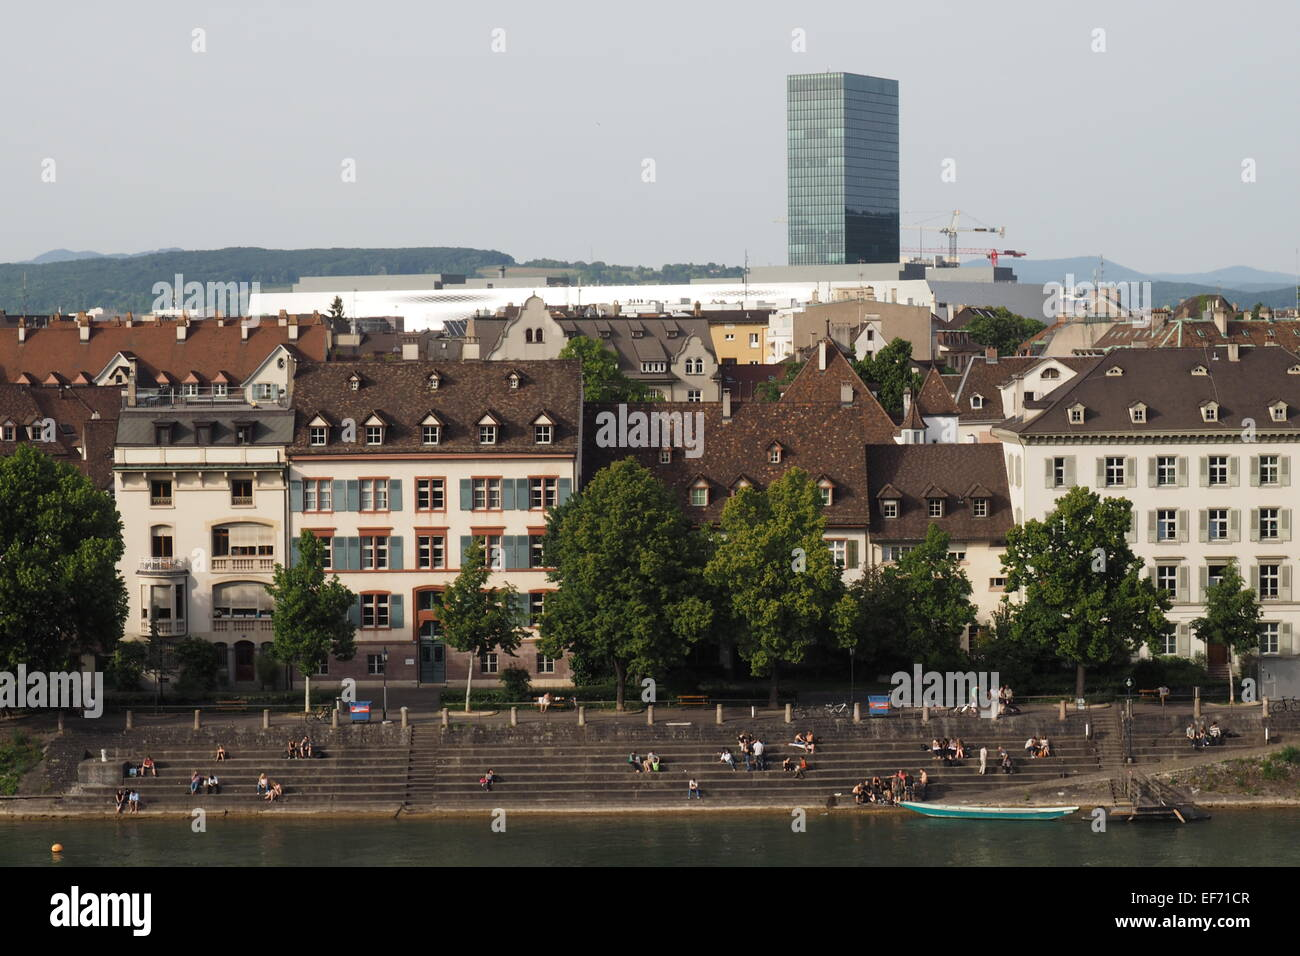 People sitting and sunbaking along the banks of the Rhine River in Basel. Stock Photo